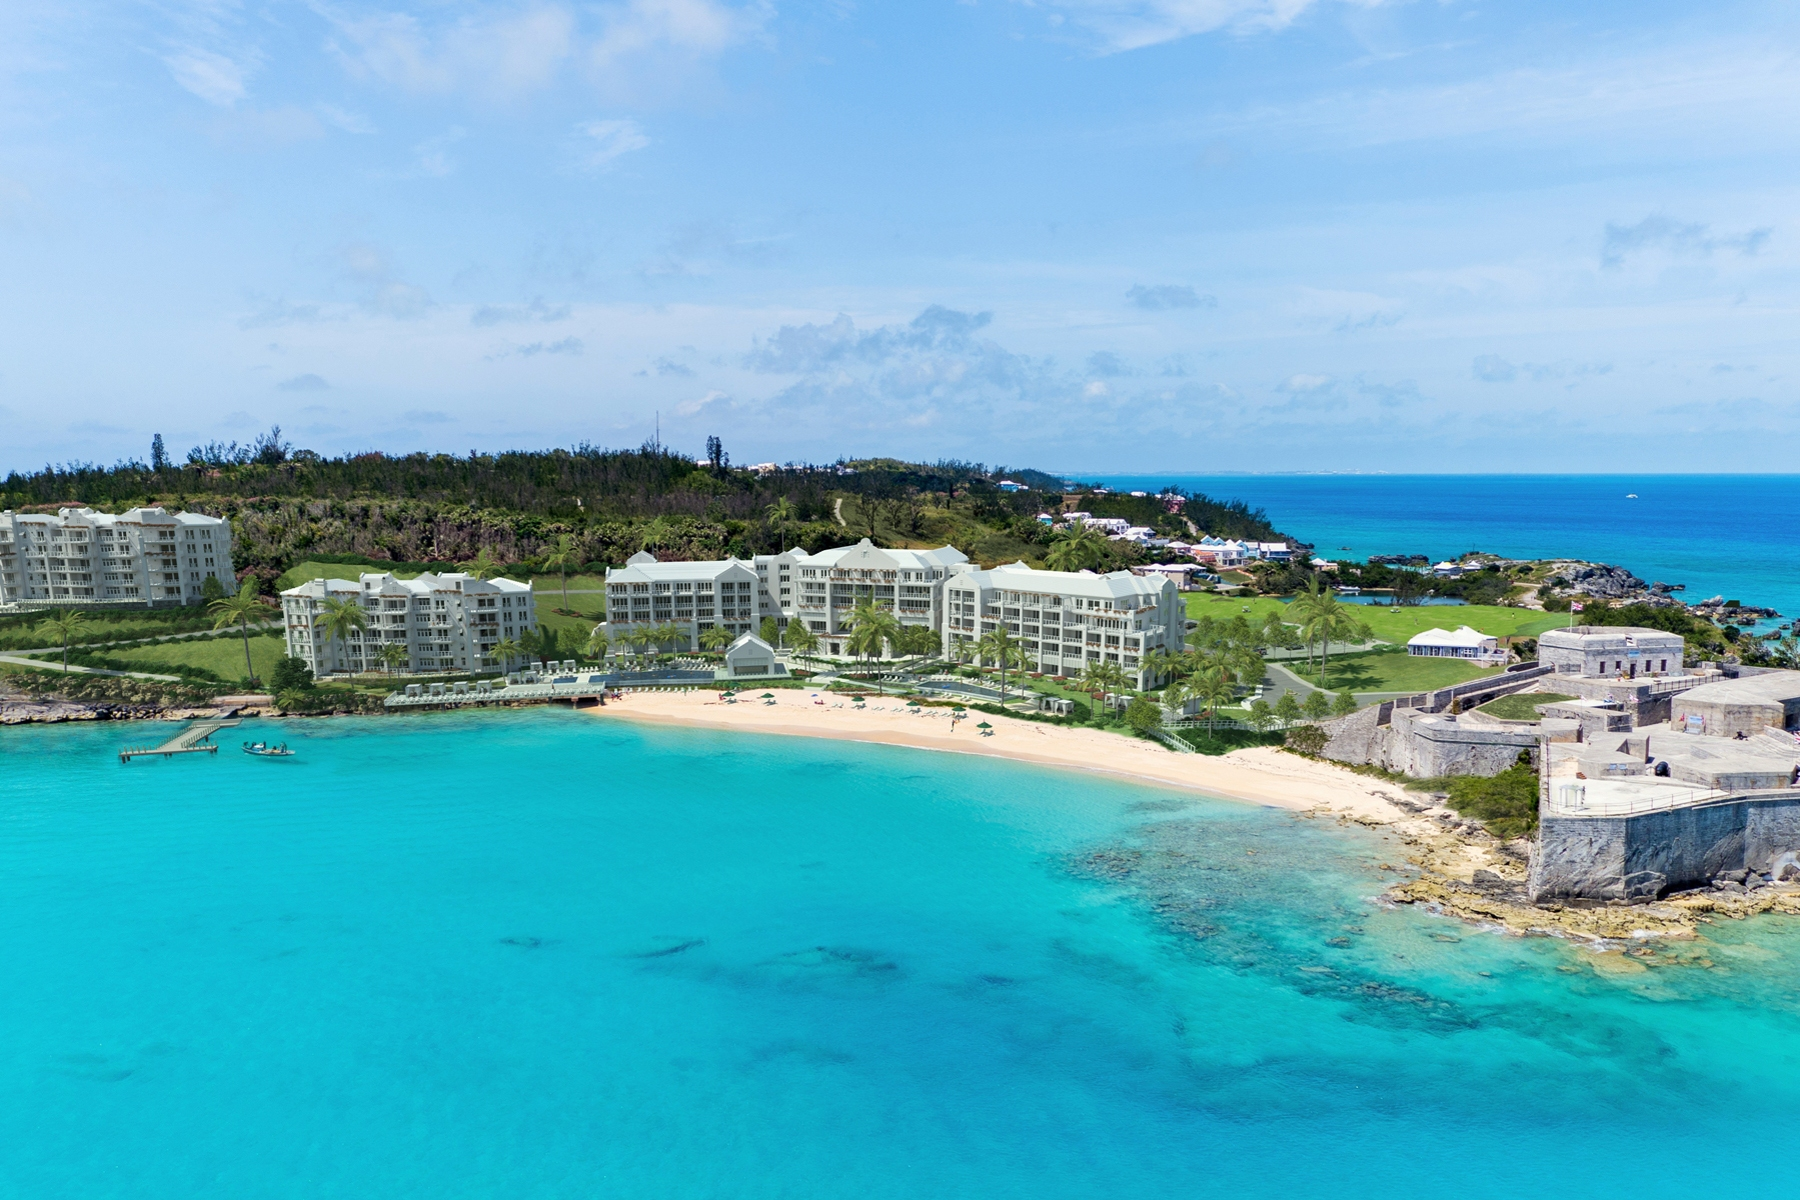 Condominiums for Sale at The Residences at St. Regis Bermuda Unit 1A St. Catherine's Beach Other Bermuda, Other Areas In Bermuda GE03 Bermuda